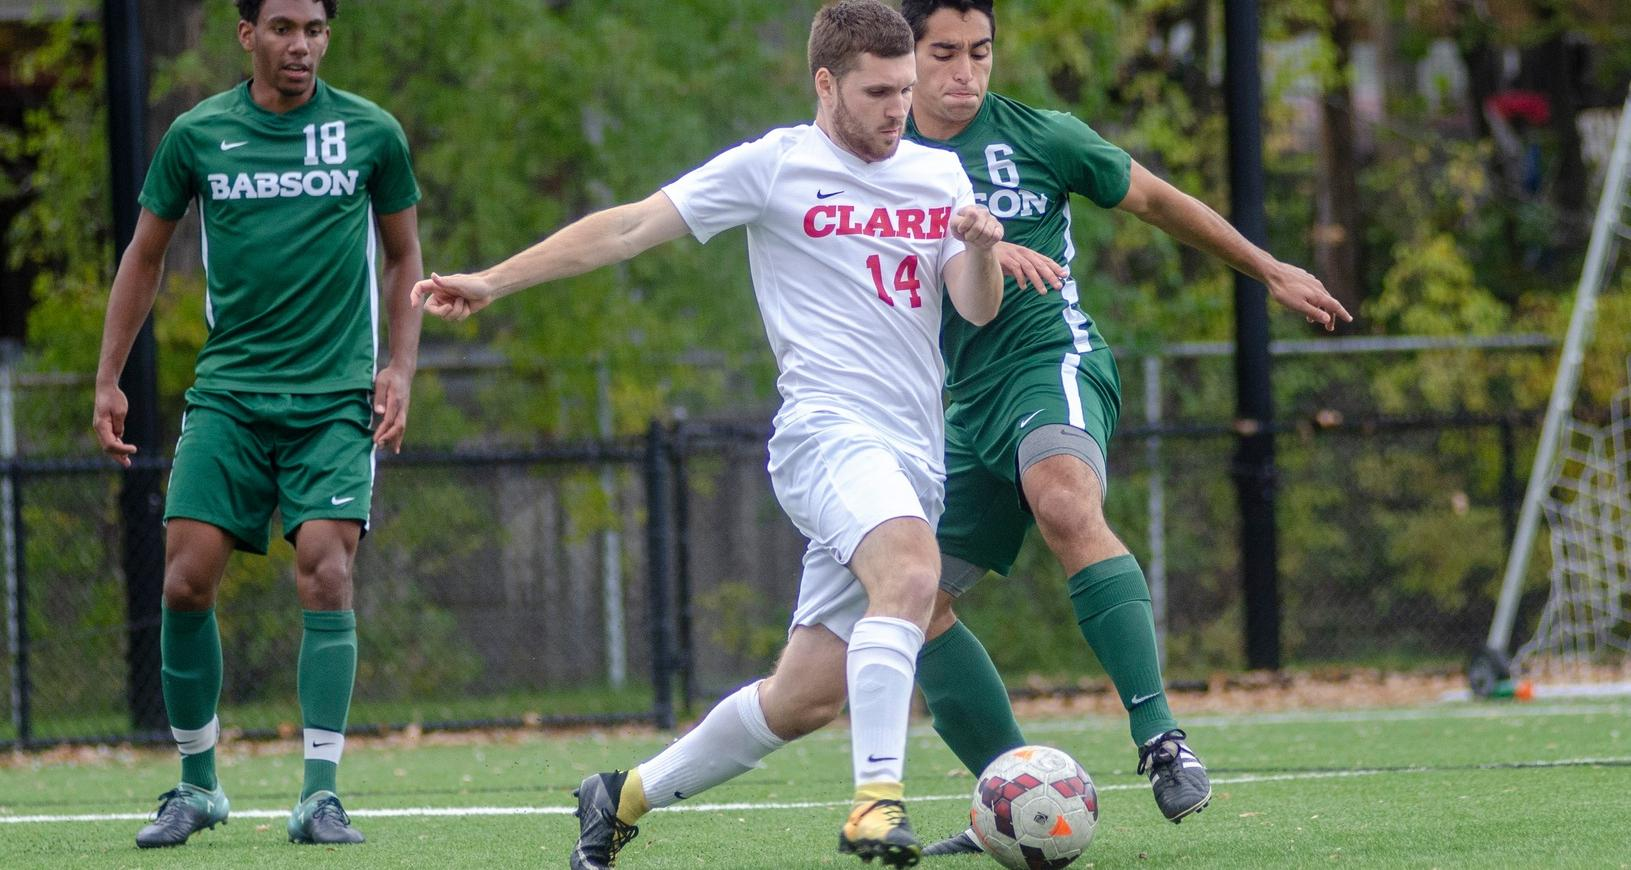 Two Second Half Goals Lifts Babson over Cougars